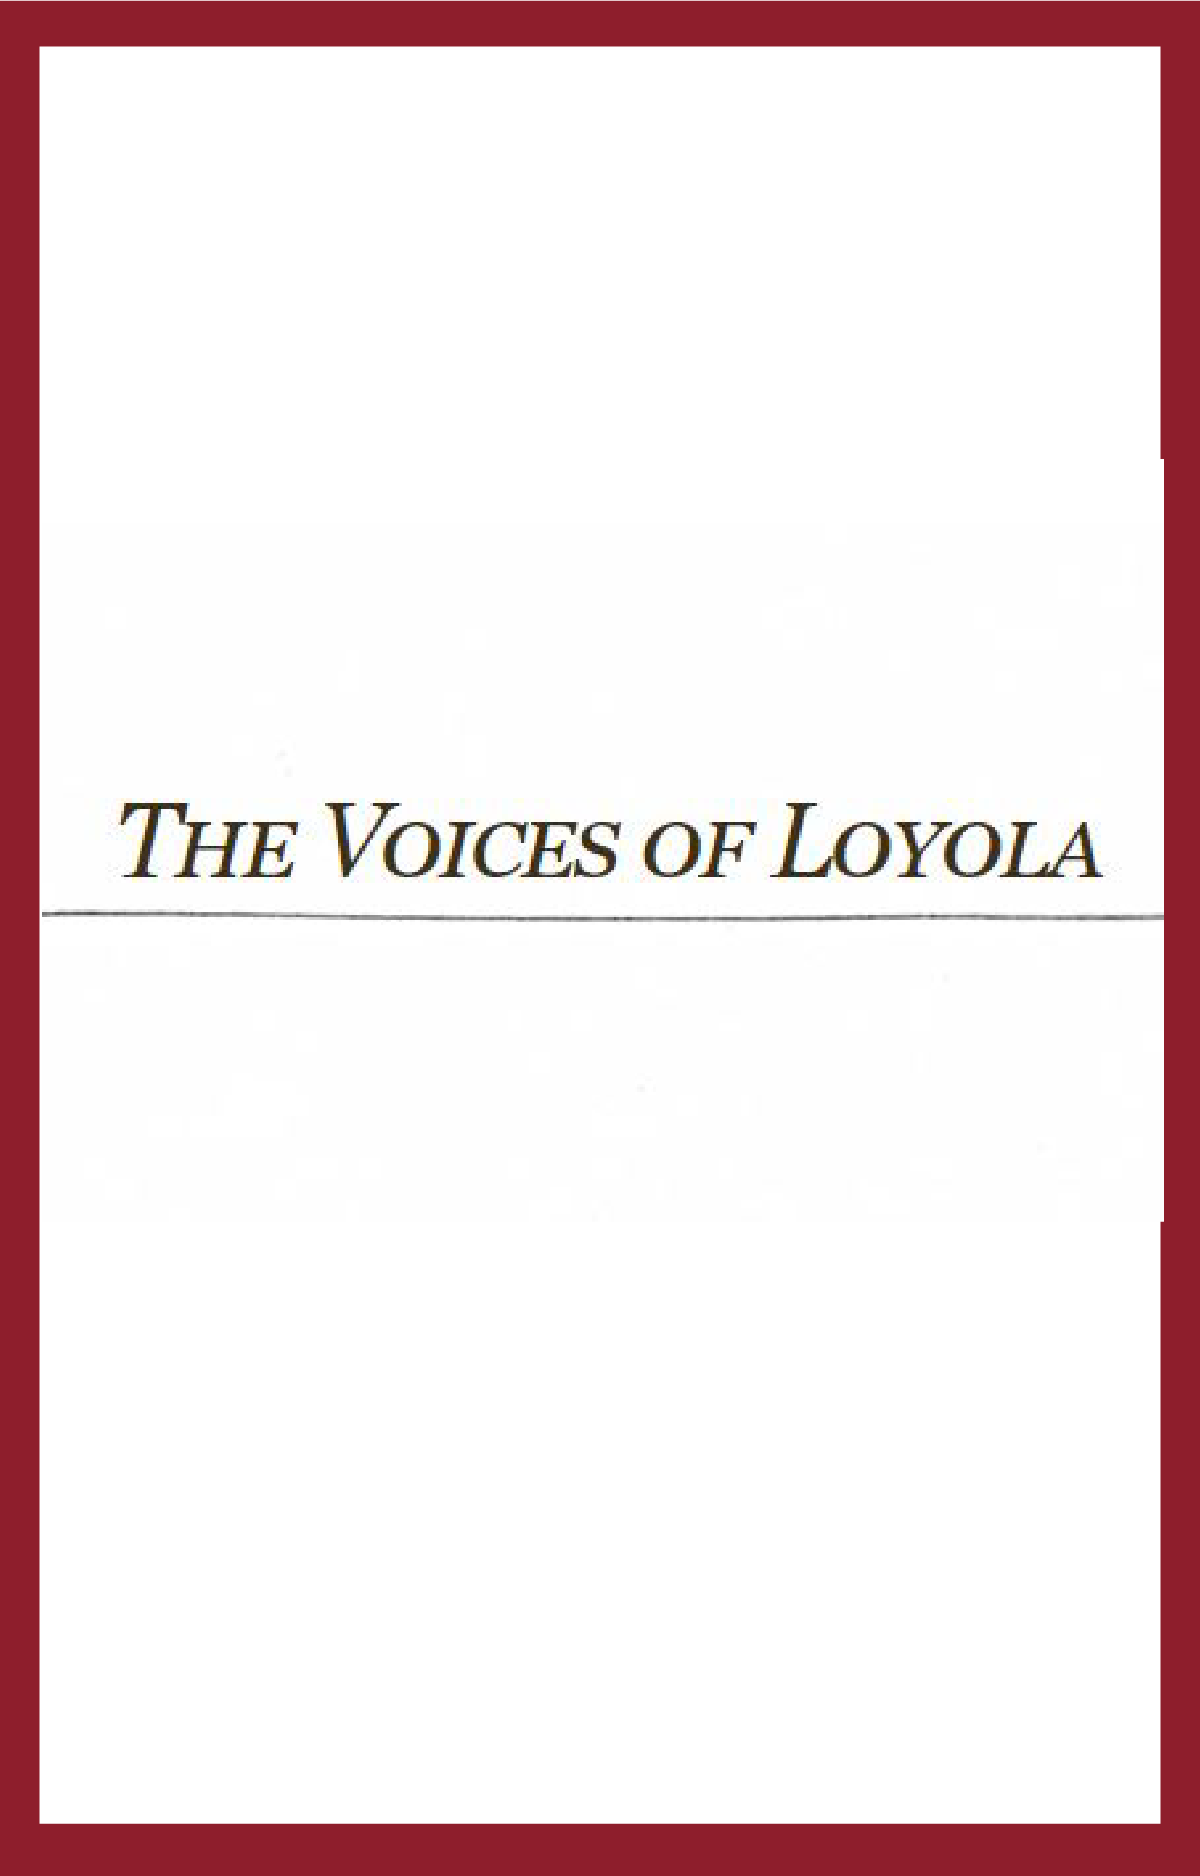 The Voices of Loyola